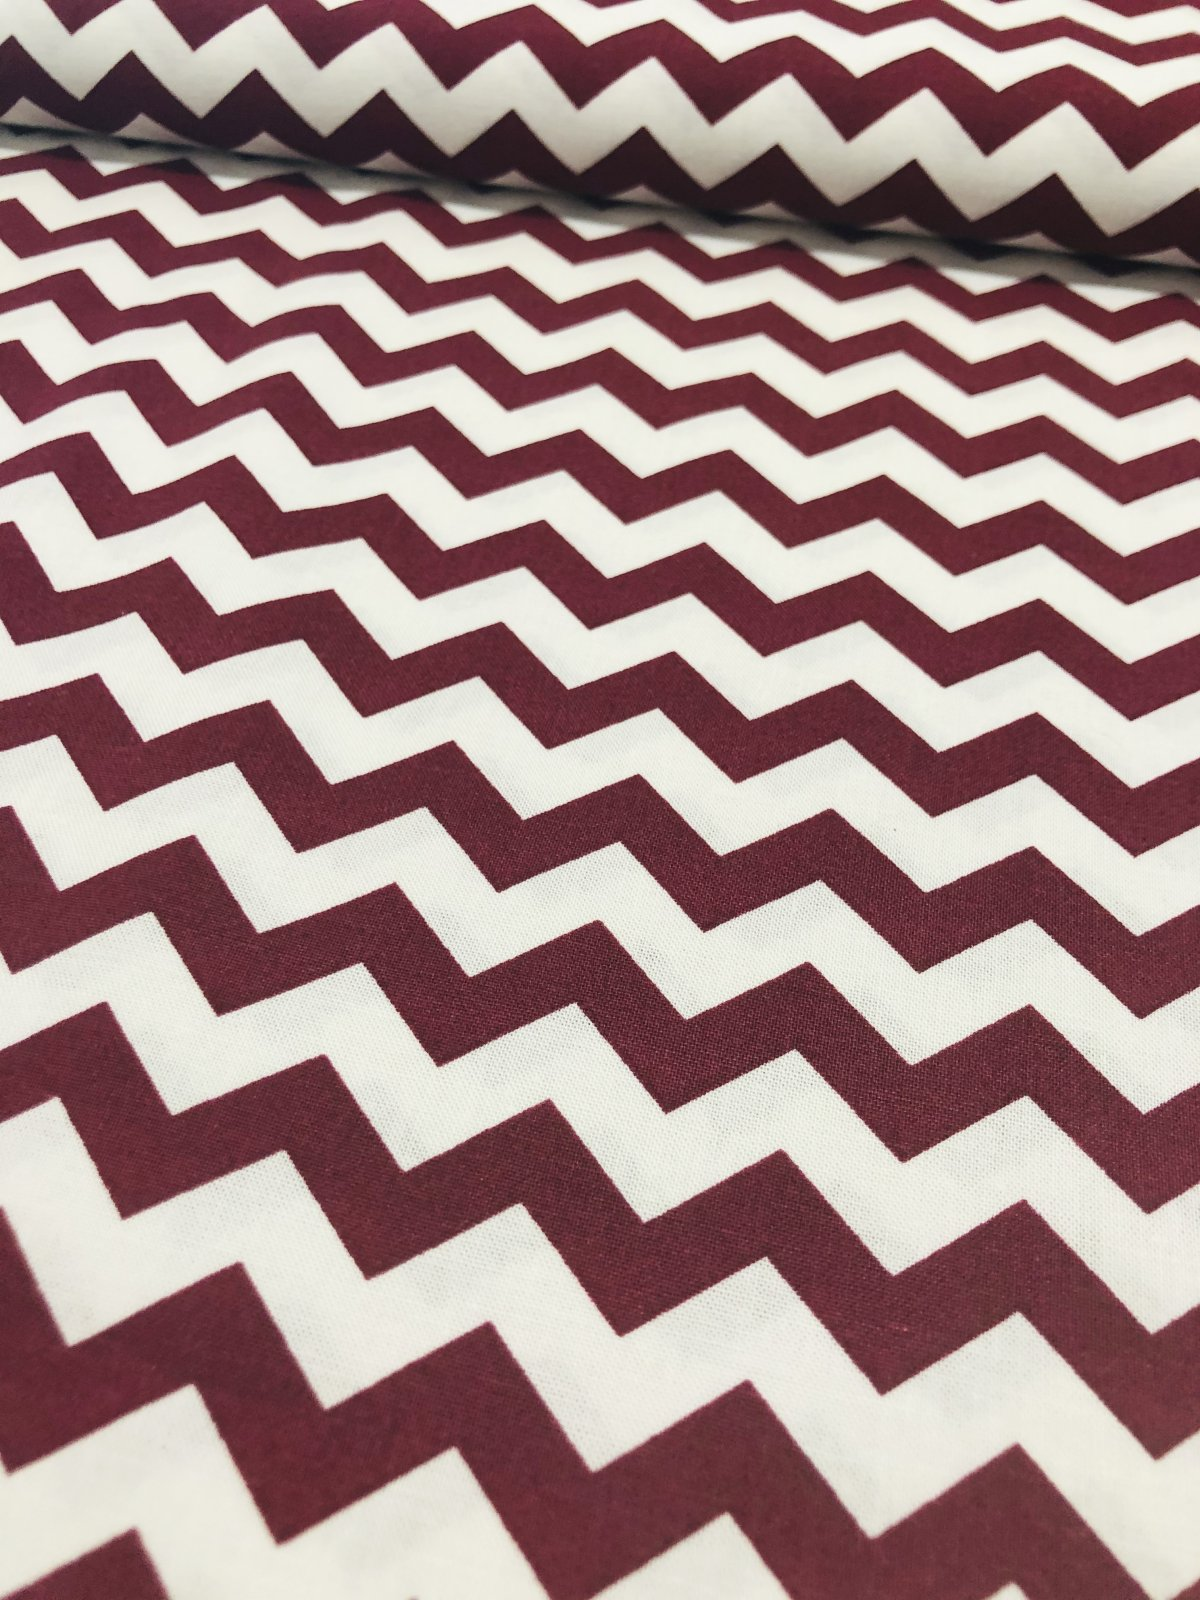 Burgundy and White Chevrons